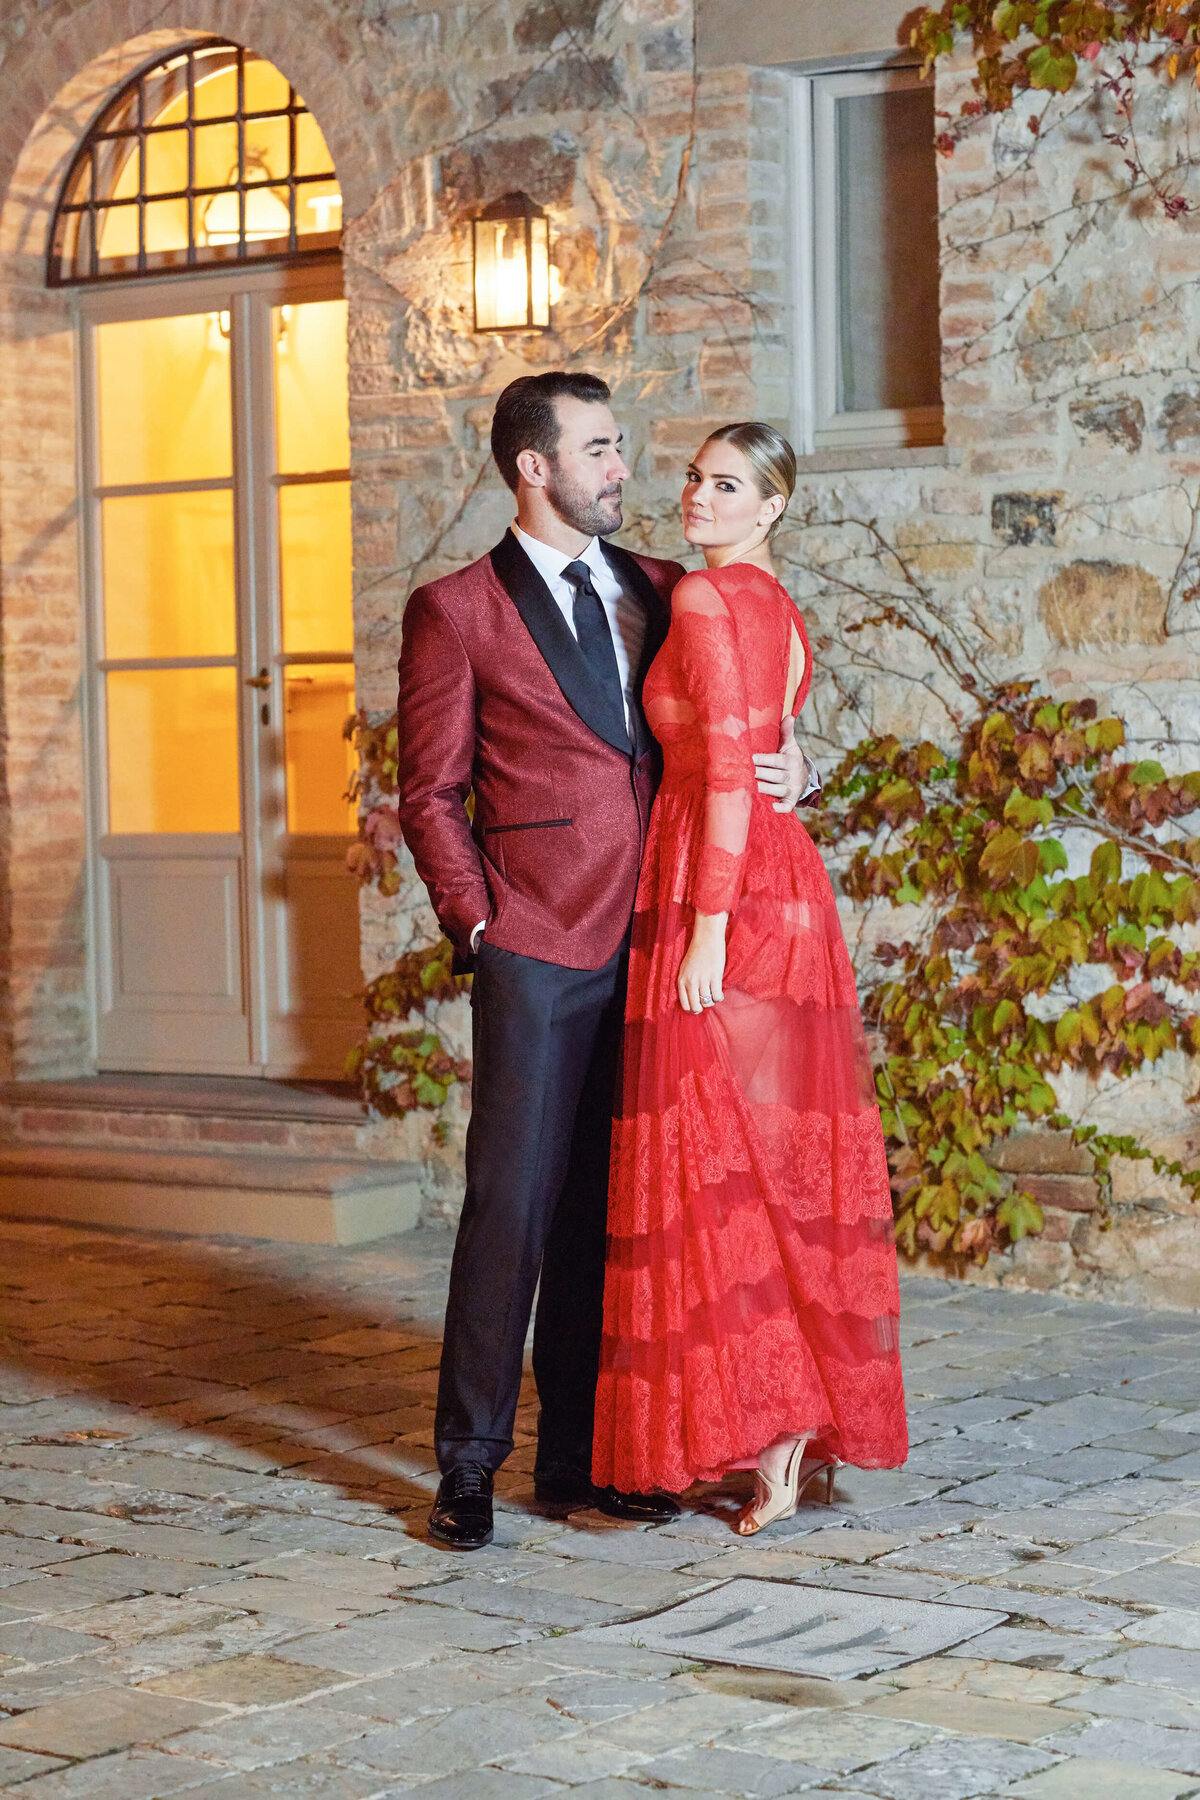 4-KTMerry-weddings-Kate-Upton-Justin-Verlander-Tuscany